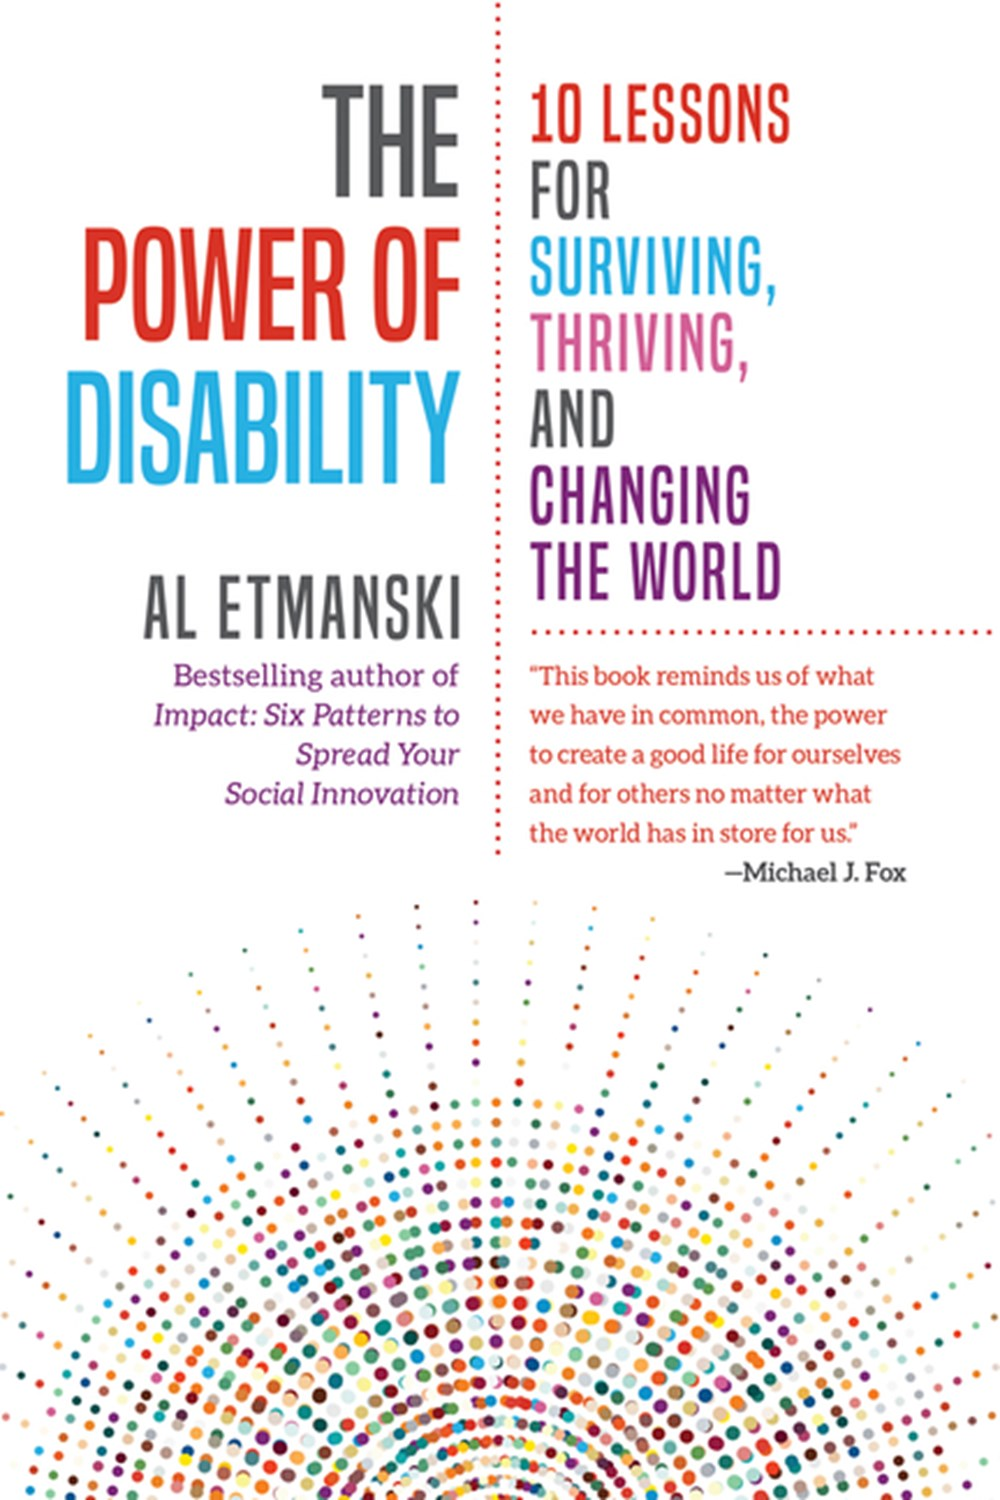 Power of Disability 10 Lessons for Surviving, Thriving, and Changing the World